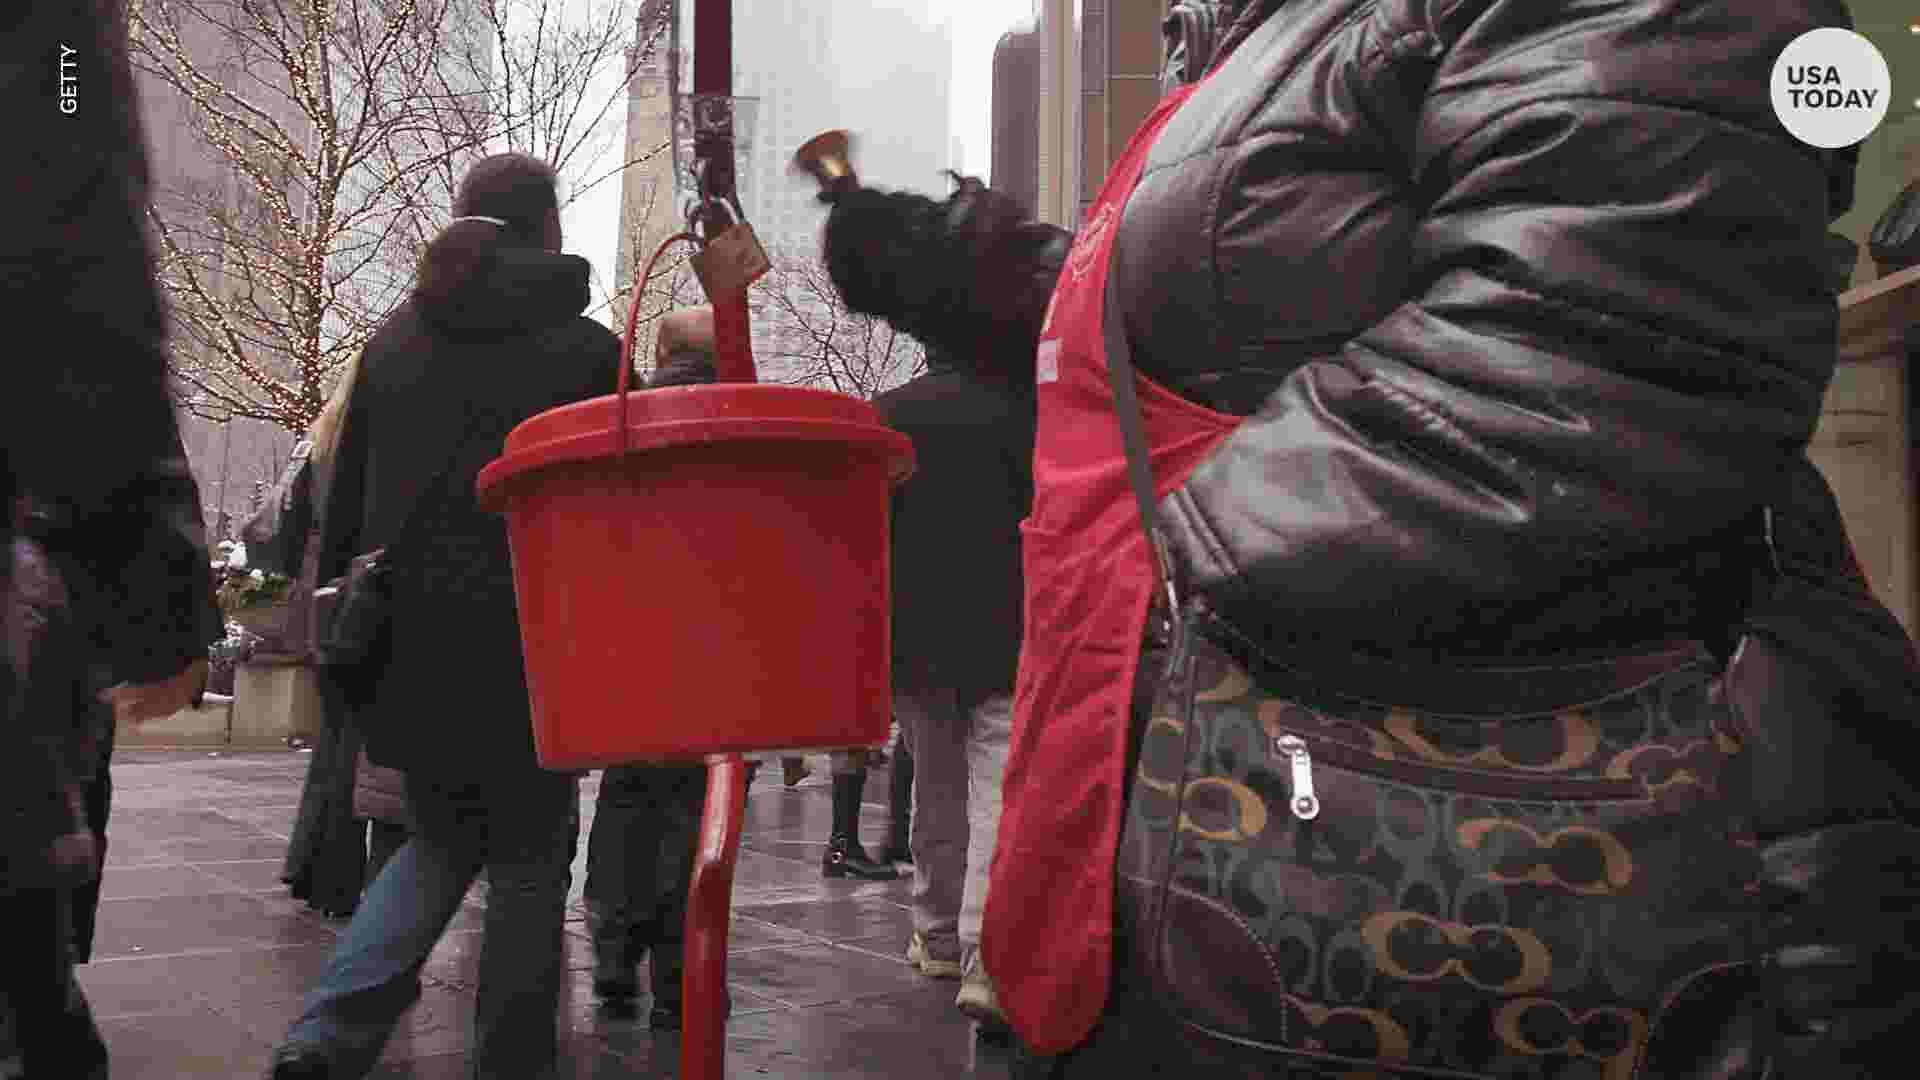 Salvation Army pulling out red kettles earlier to help 'rescue Christmas' amid pandemic